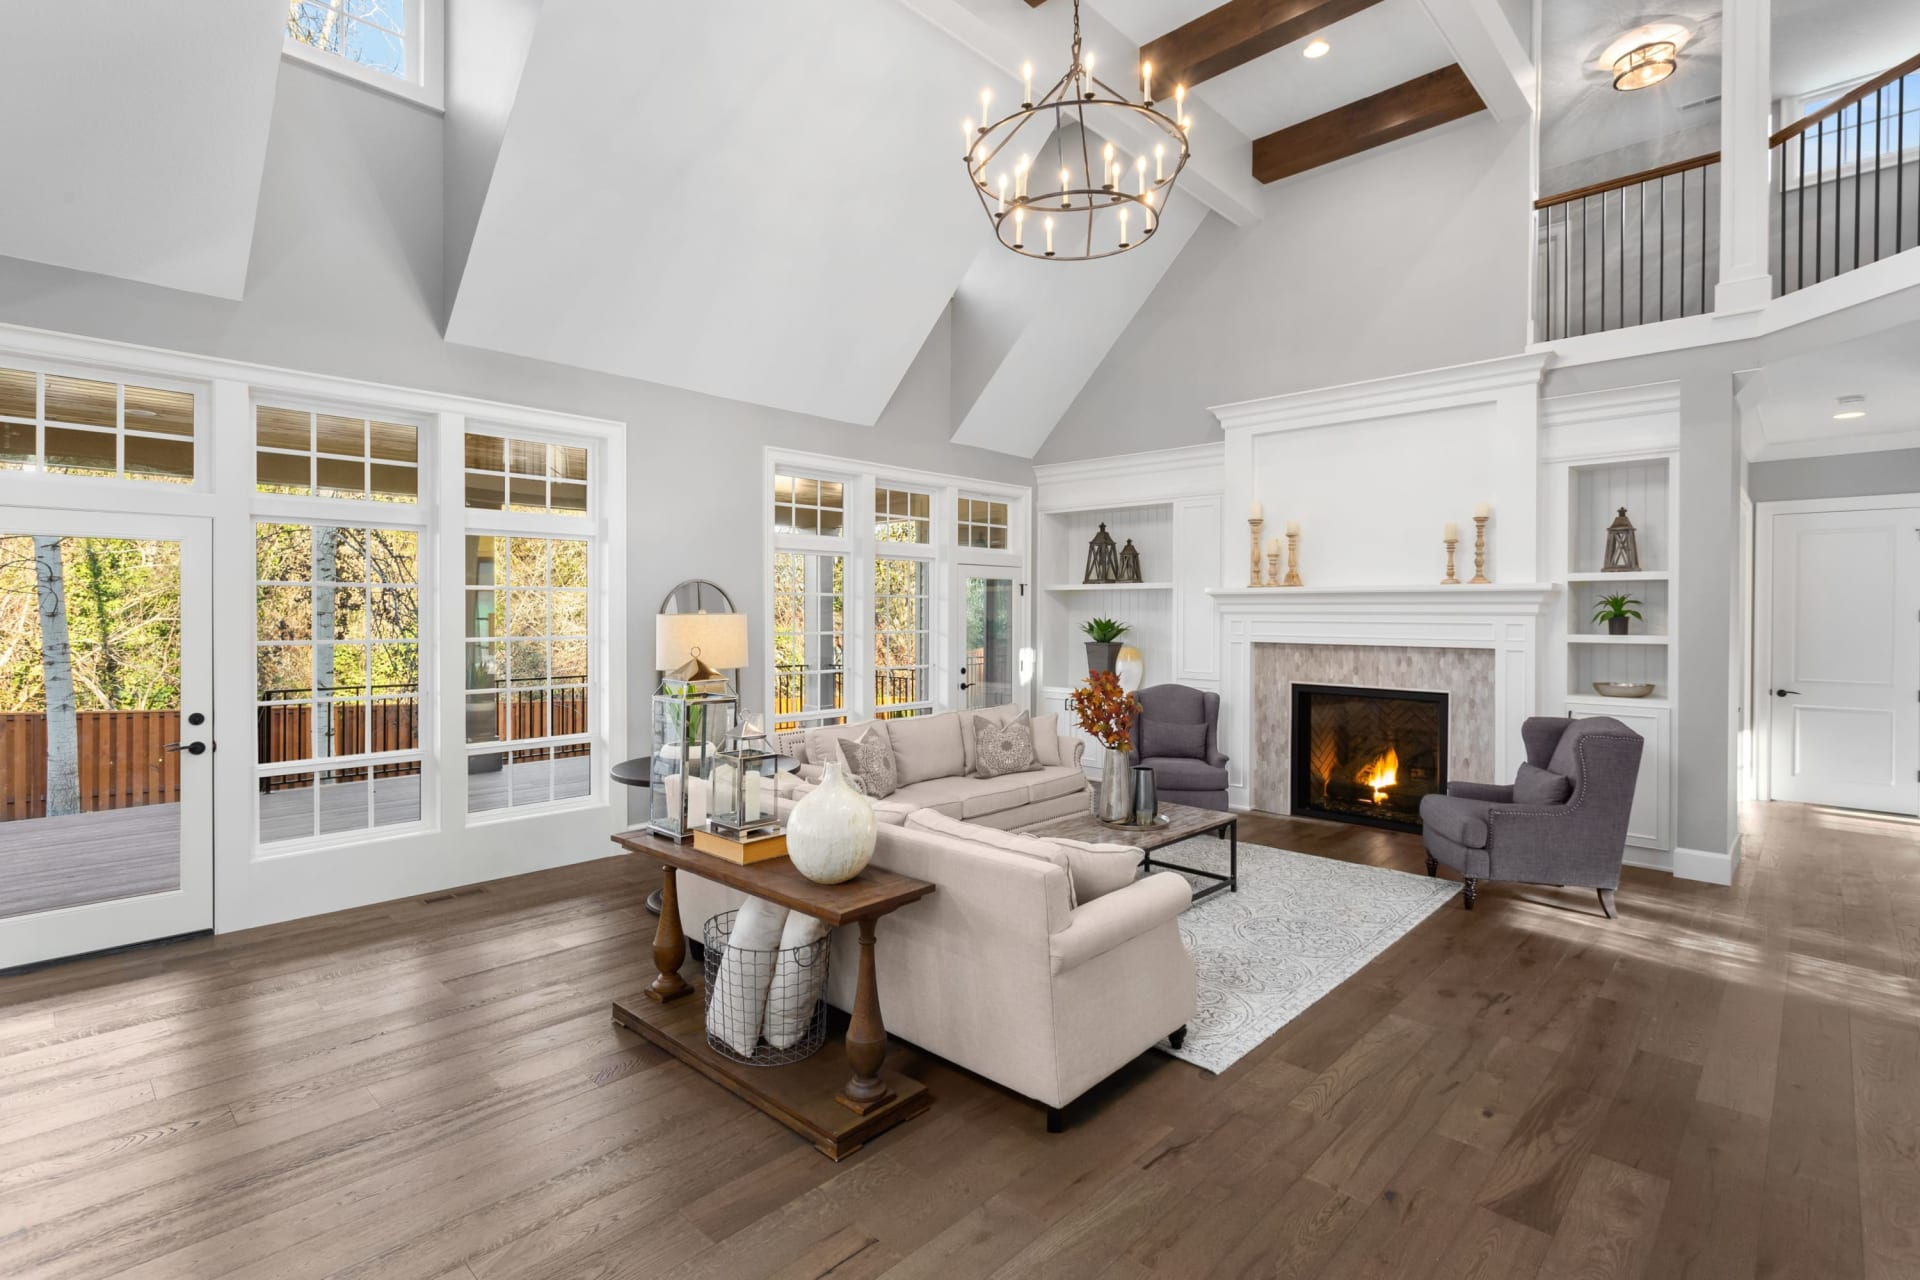 Compass' Greenwich Q2 Market Report: Significant YOY Increase in Luxury Home Sales Over $6M